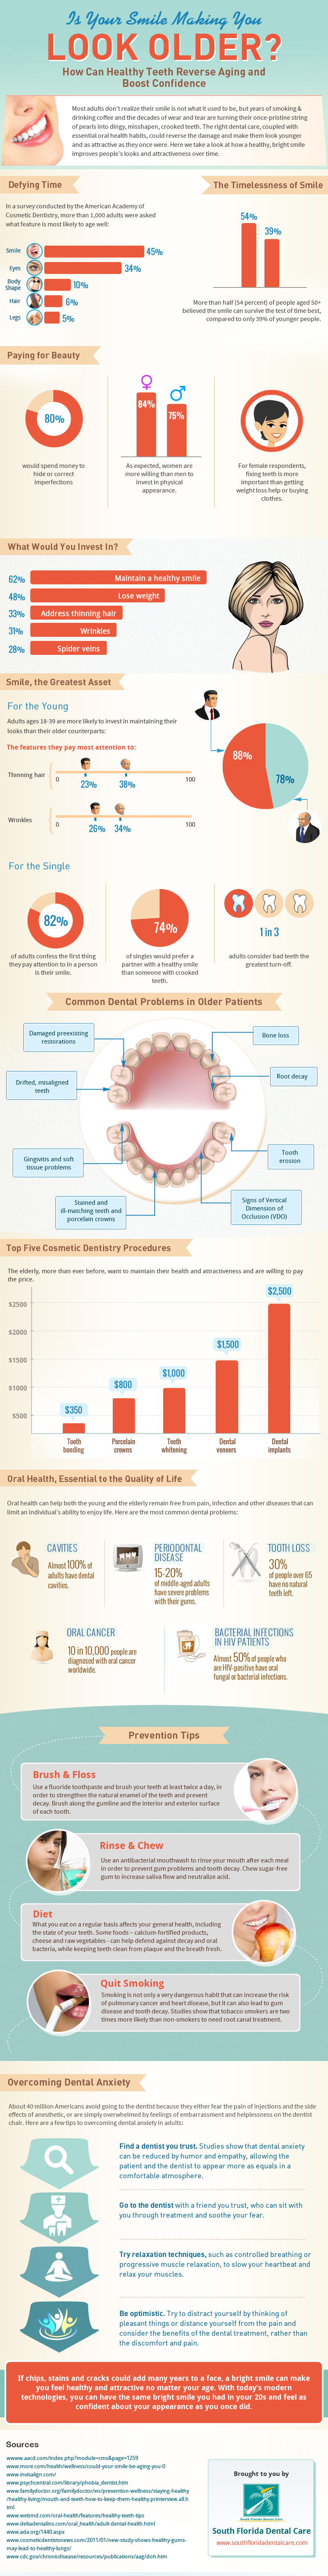 Infographic on How Your Smile Can Make You Look Older